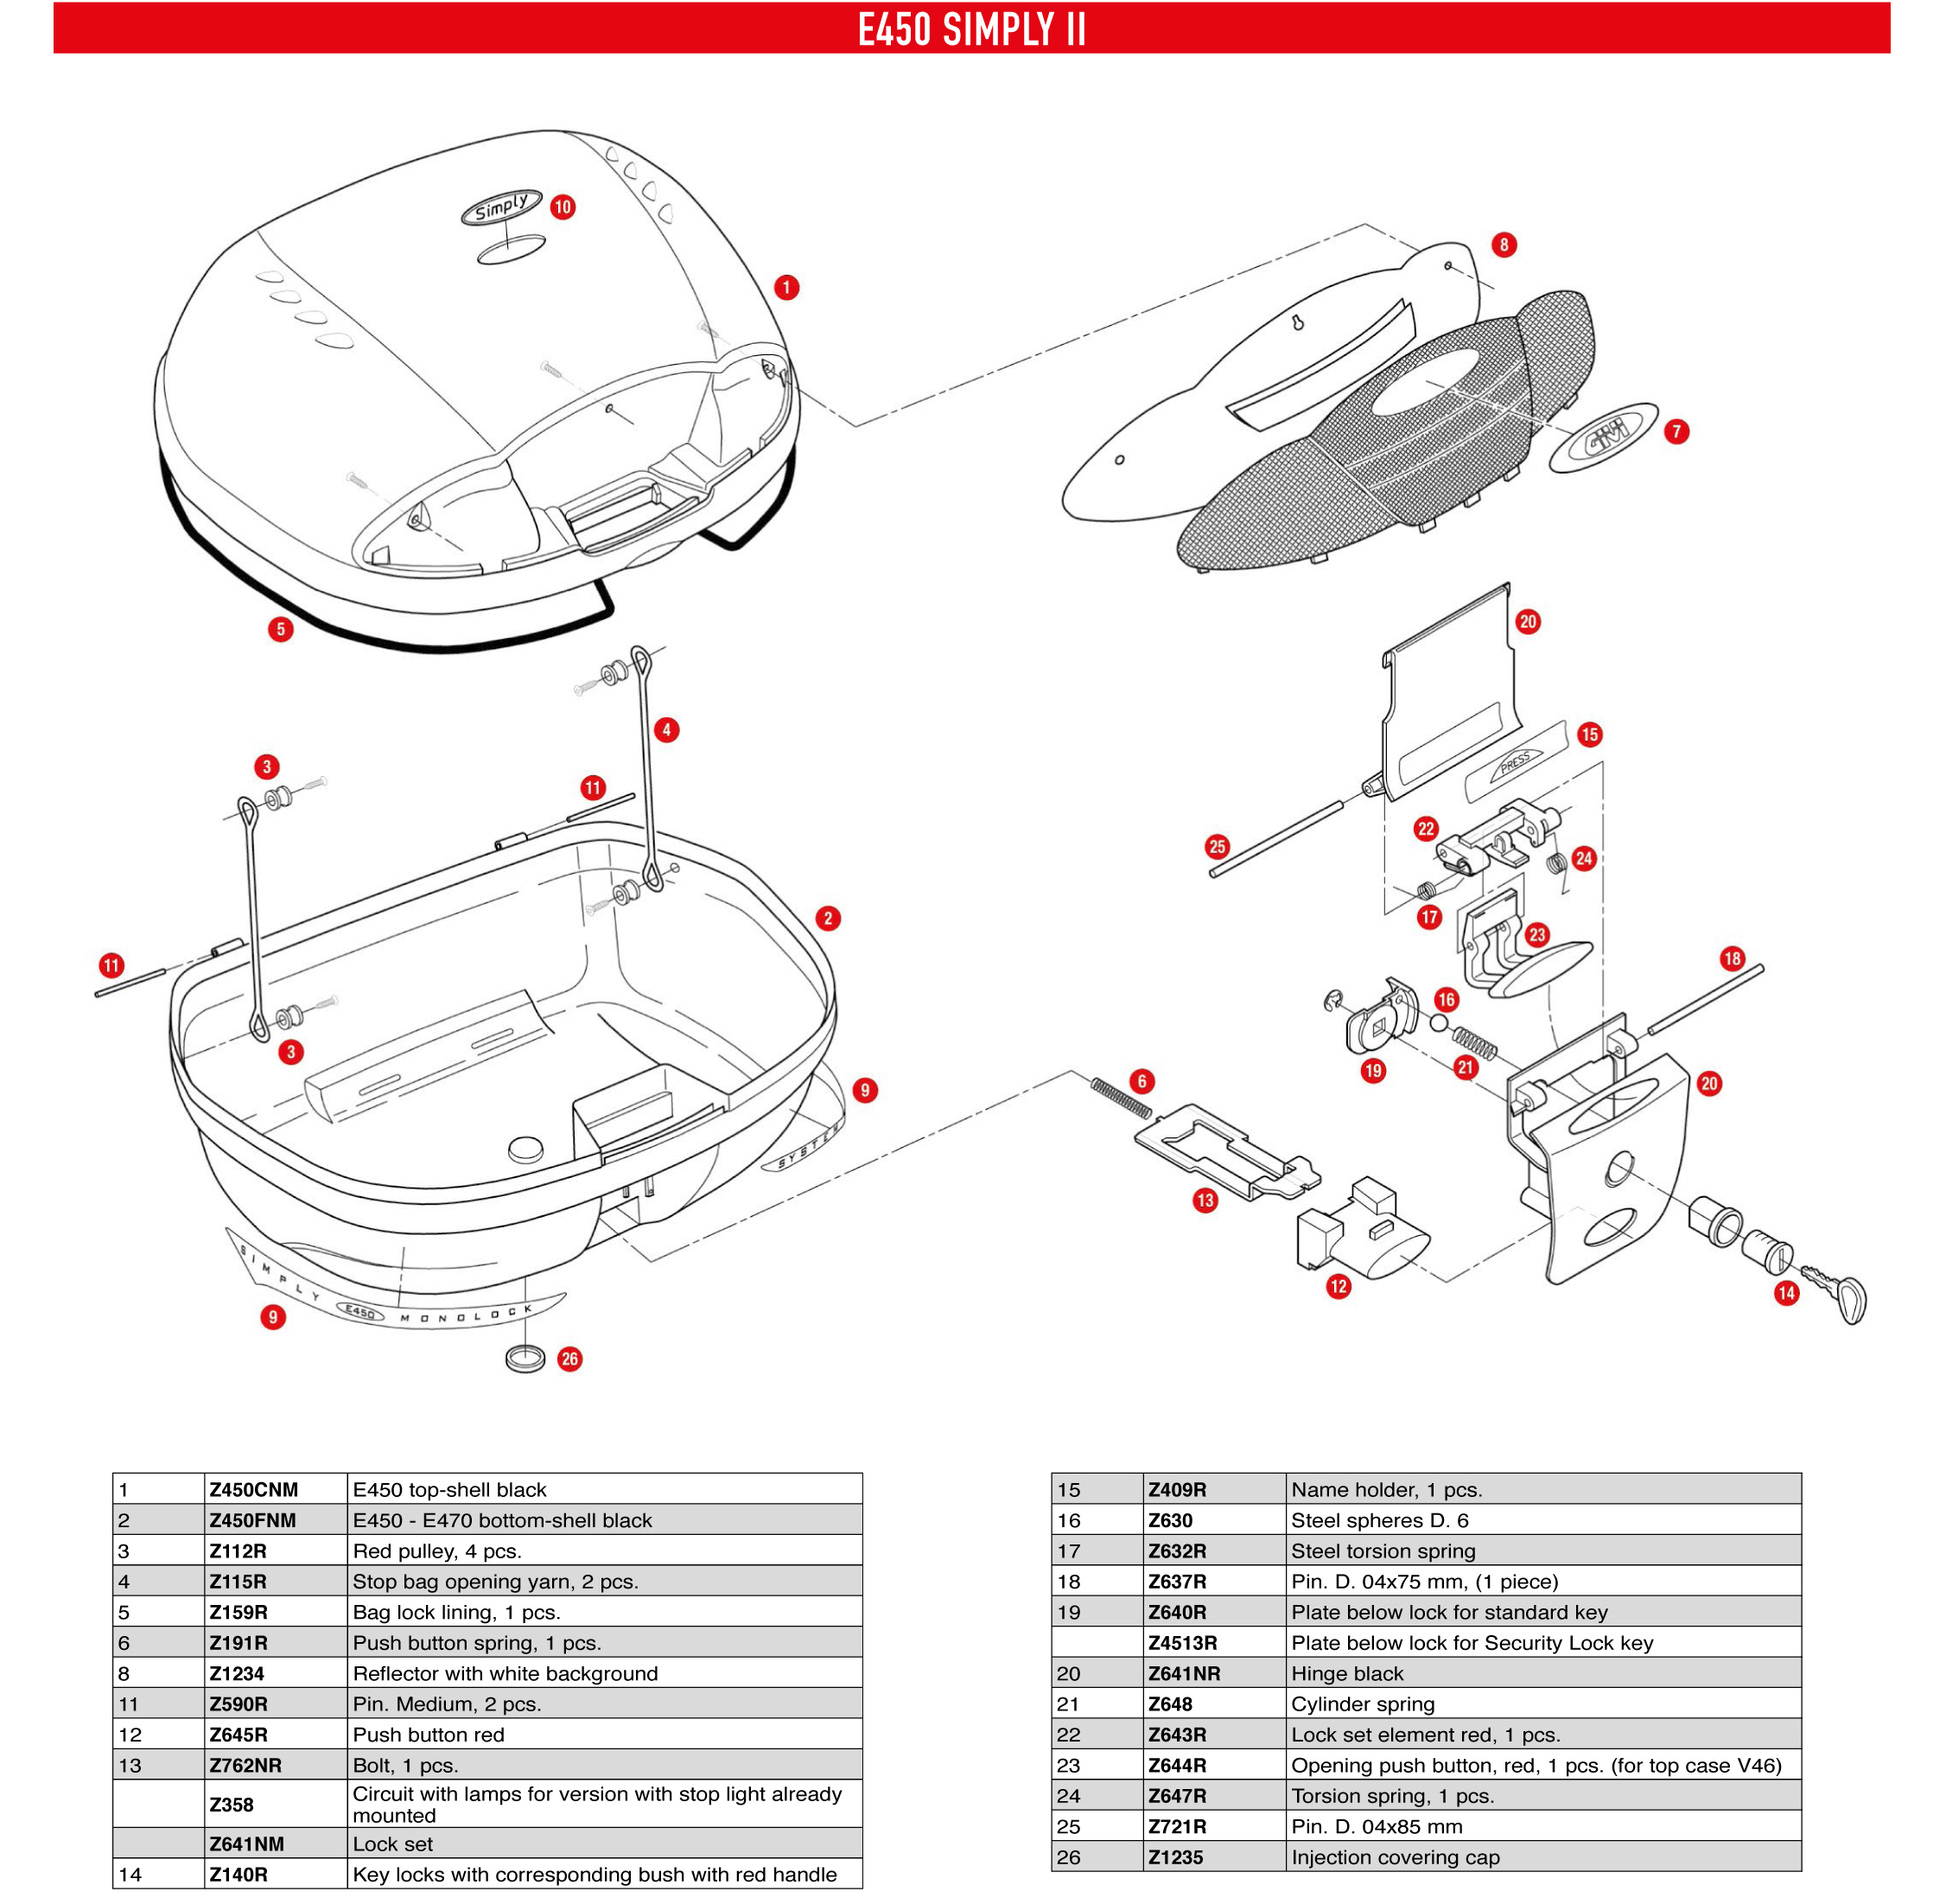 GIVI E450 Simply II top case reflecteurs rouges, cache noir.  ExplodedSparePartsView 30ff95024d09